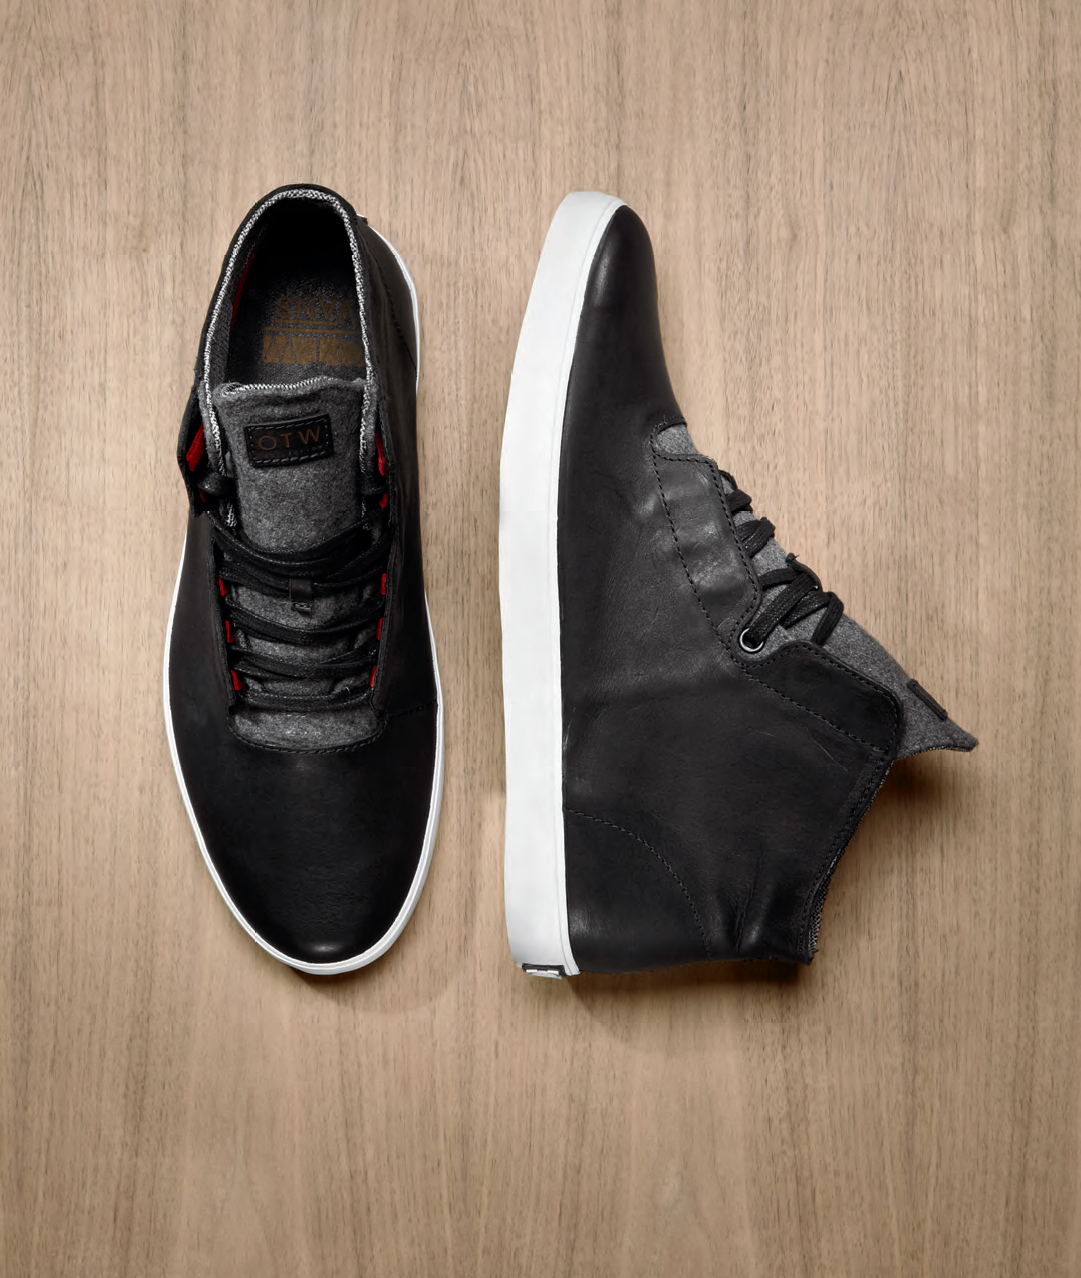 vans-otw-collection-fall-2012-the-stovepipe-1